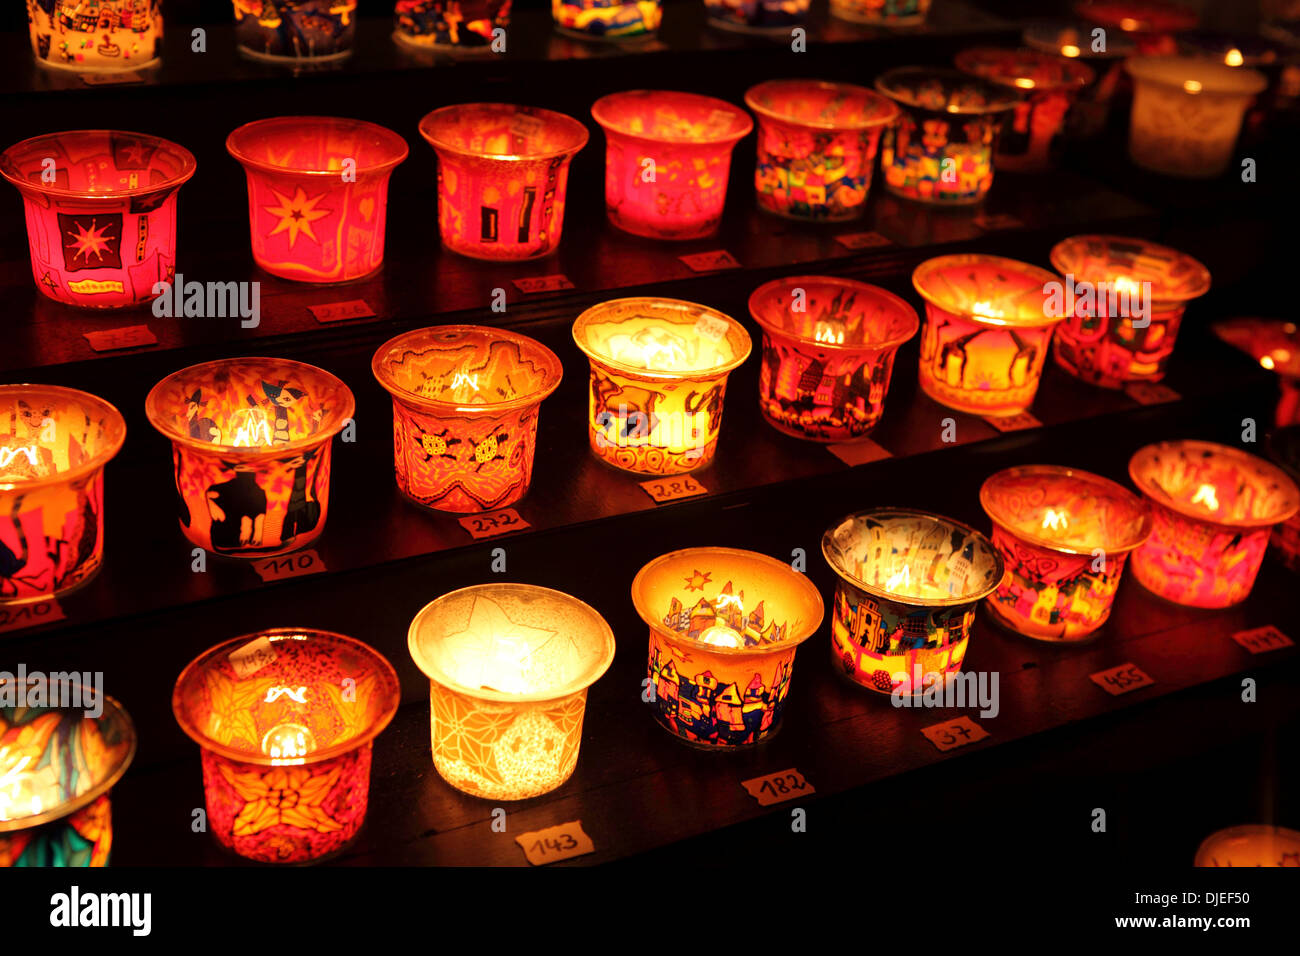 Candle holders on sale at a stall at Roncalli Christmas Market in Hamburg, Germany. The market in front of Hamburg's town hall runs from 25 November until 23 December and sells hand-crafted goods. Credit:  Stuart Forster/Alamy Live News - Stock Image